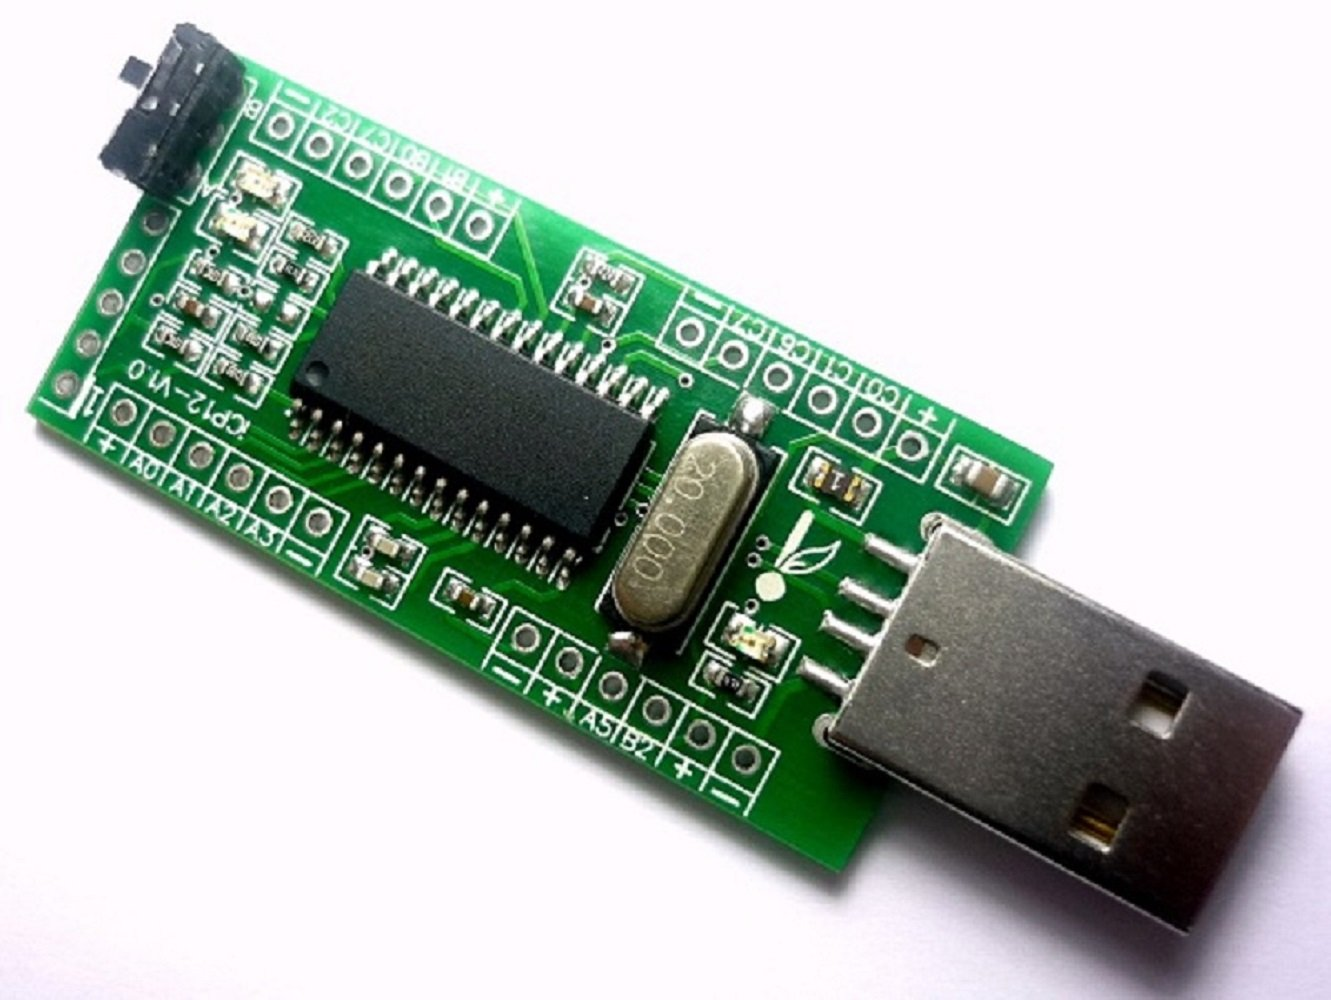 ICP12 USBSTICK, A New Tool for Signals Control & Monitoring